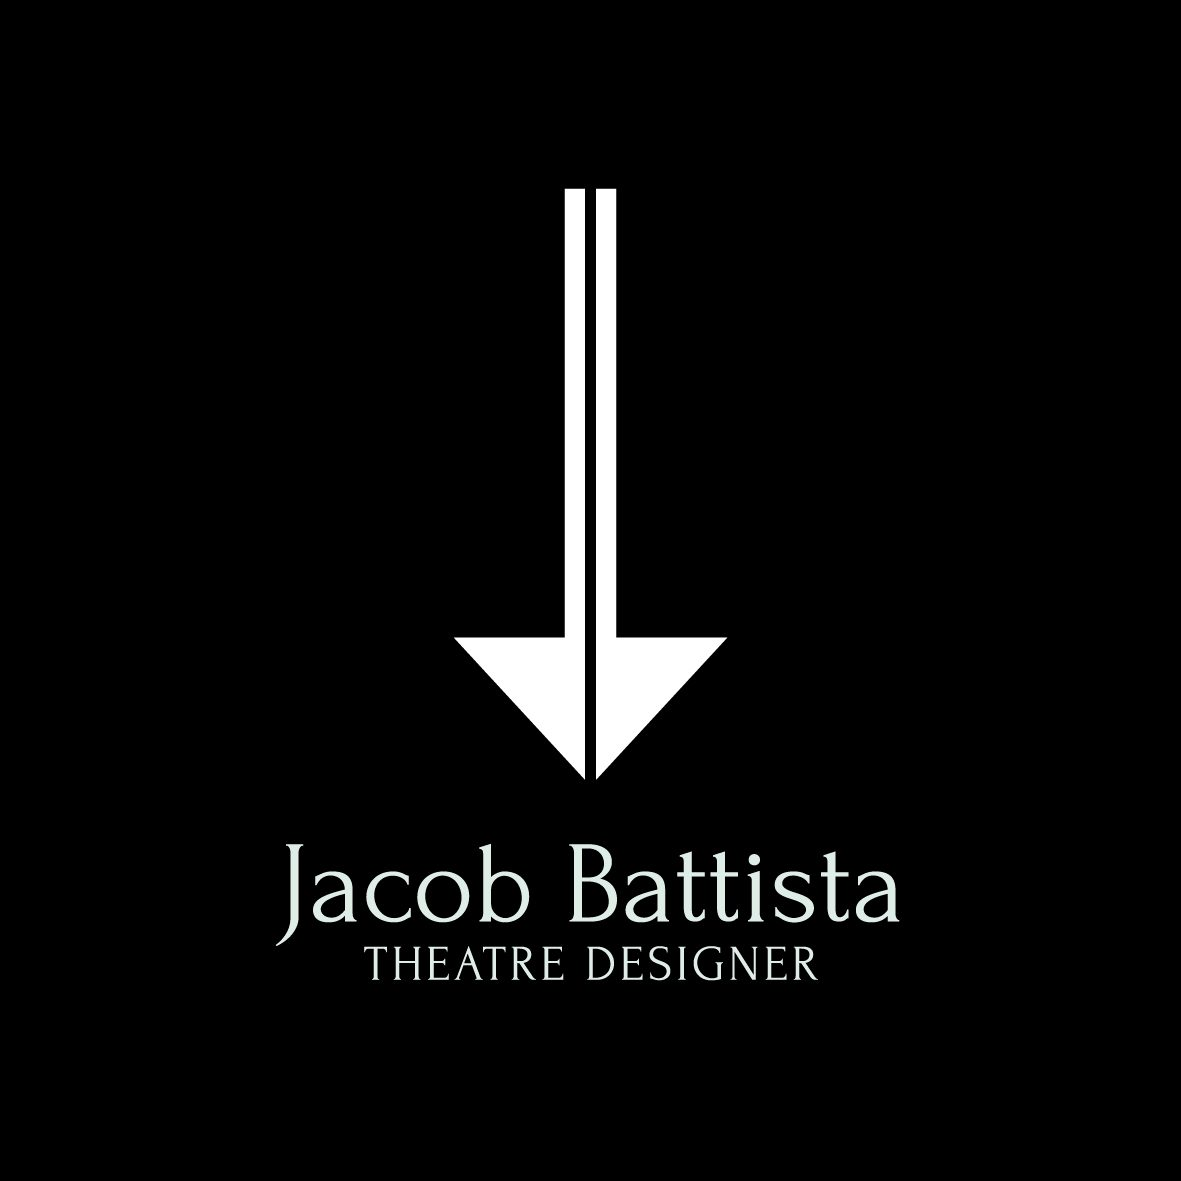 Jacob Battista